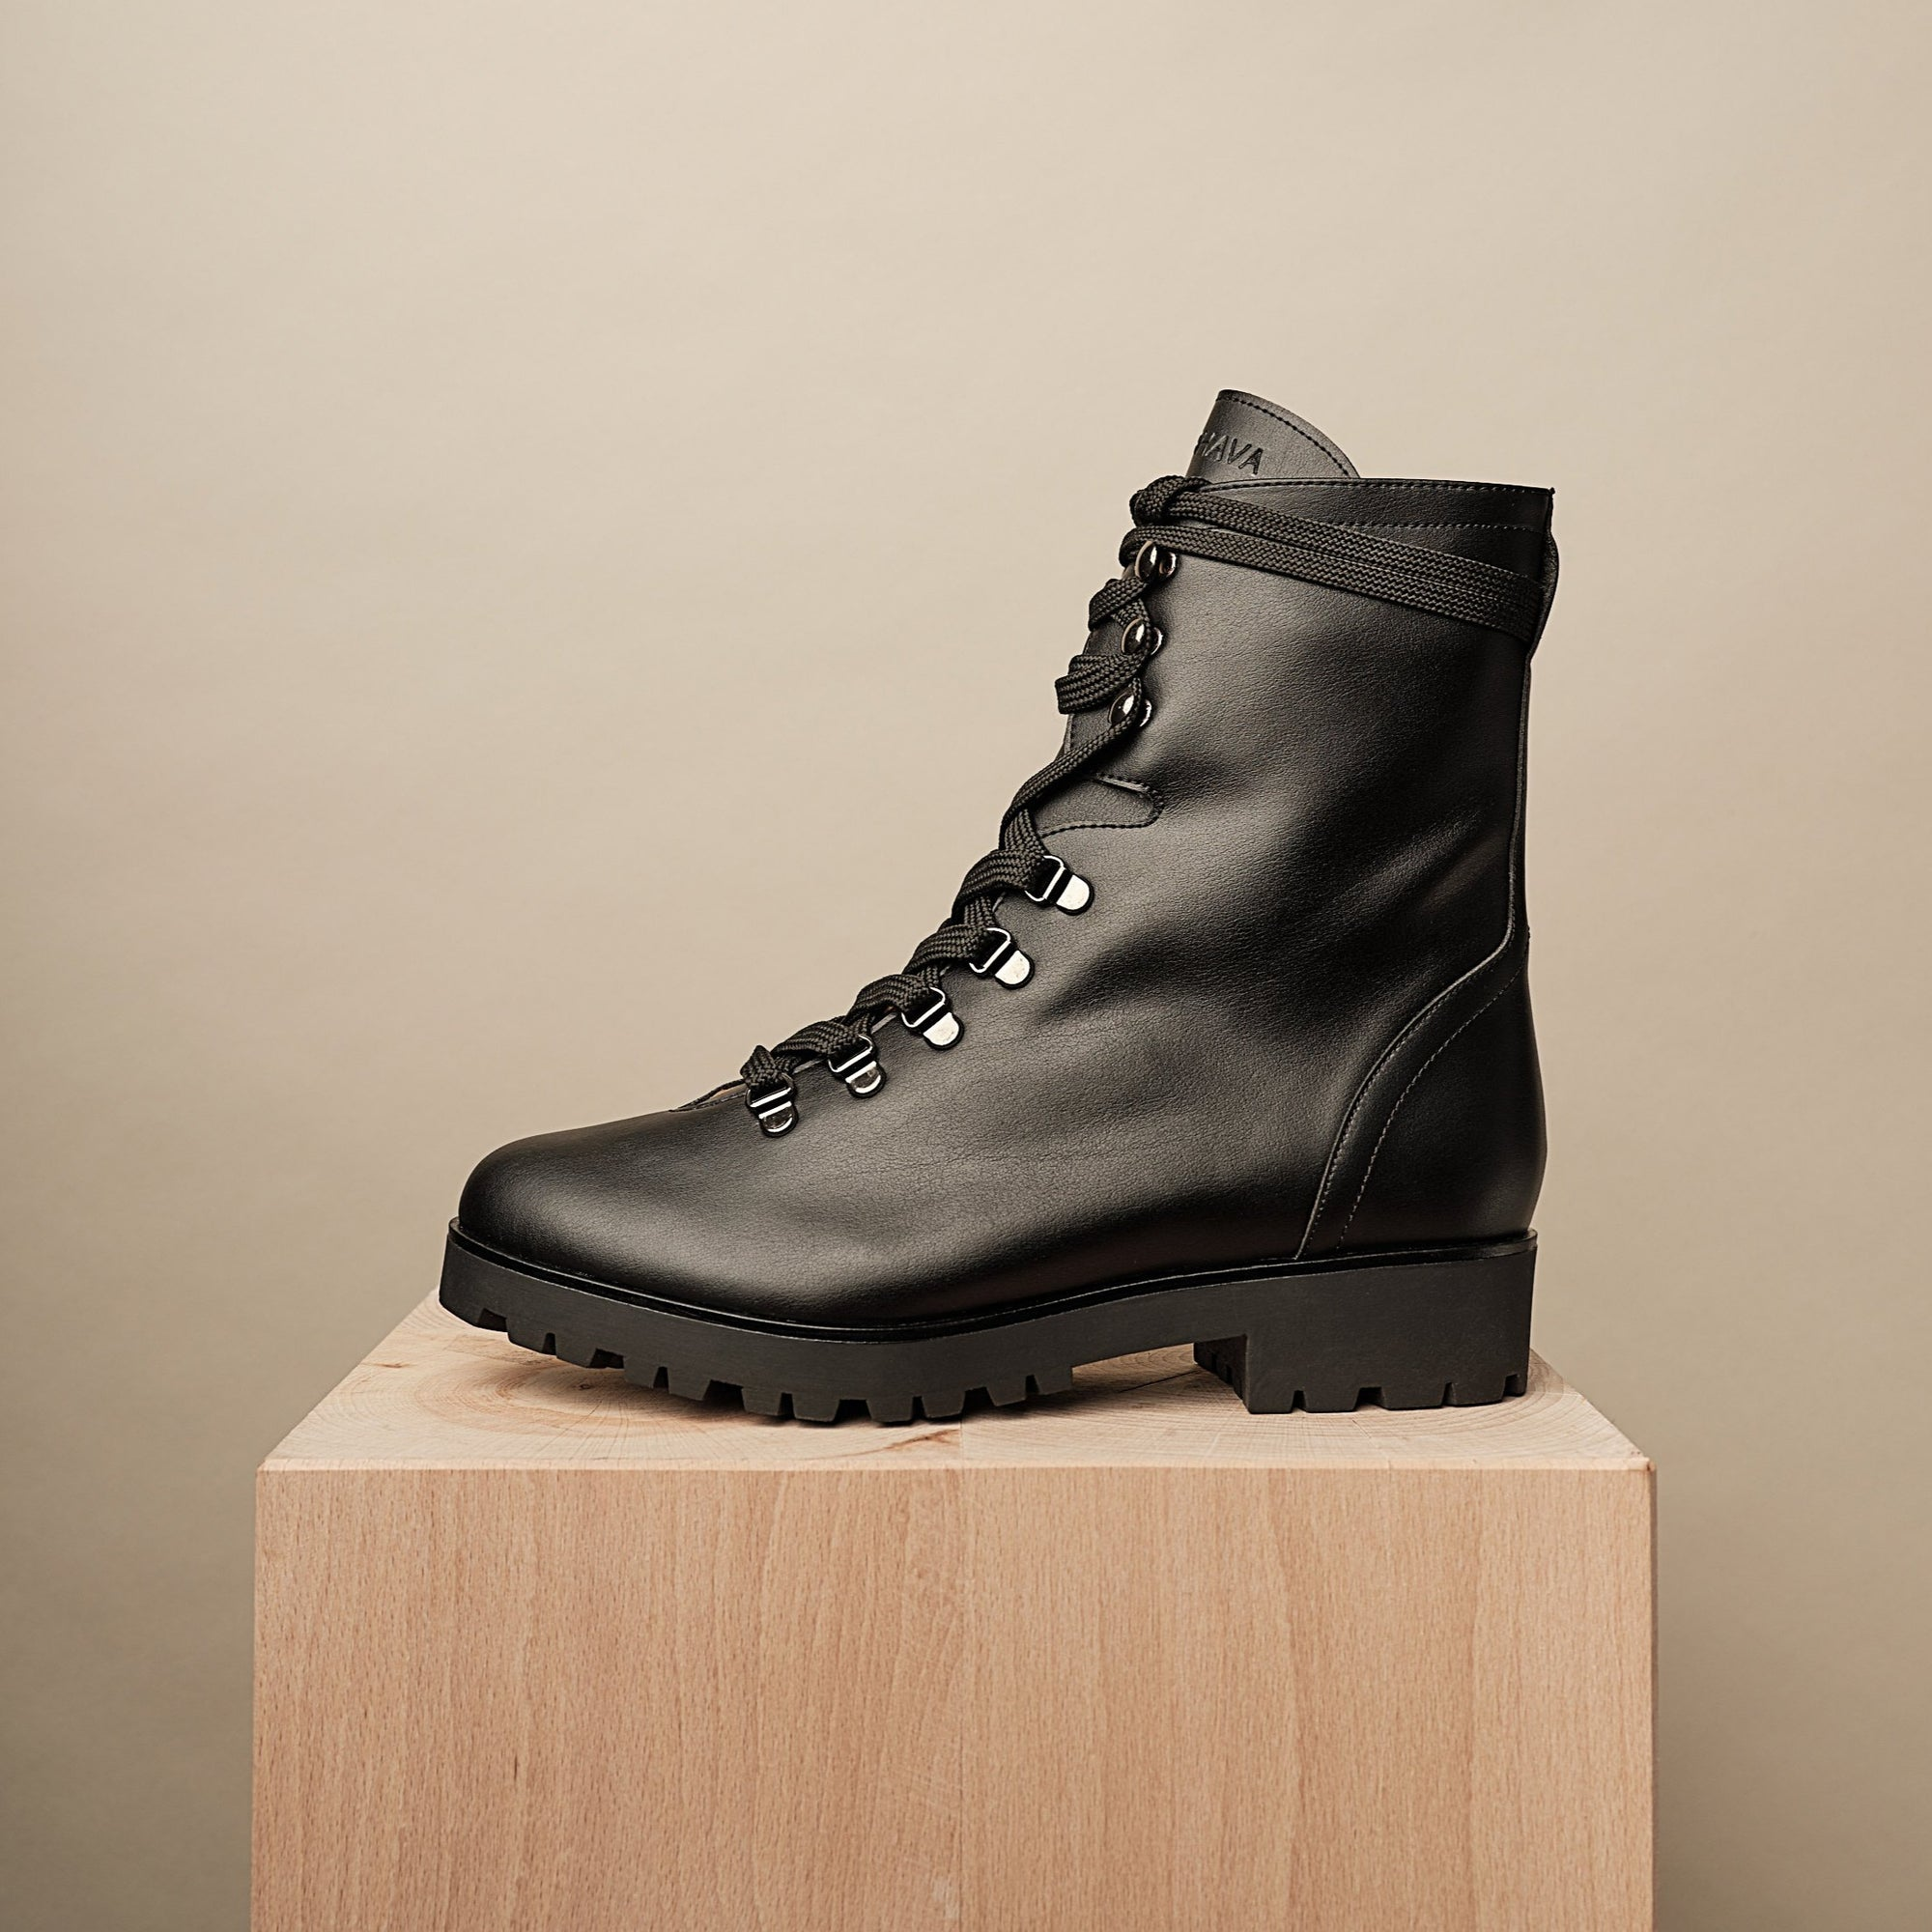 RALLY COMBAT HIKER BOOT